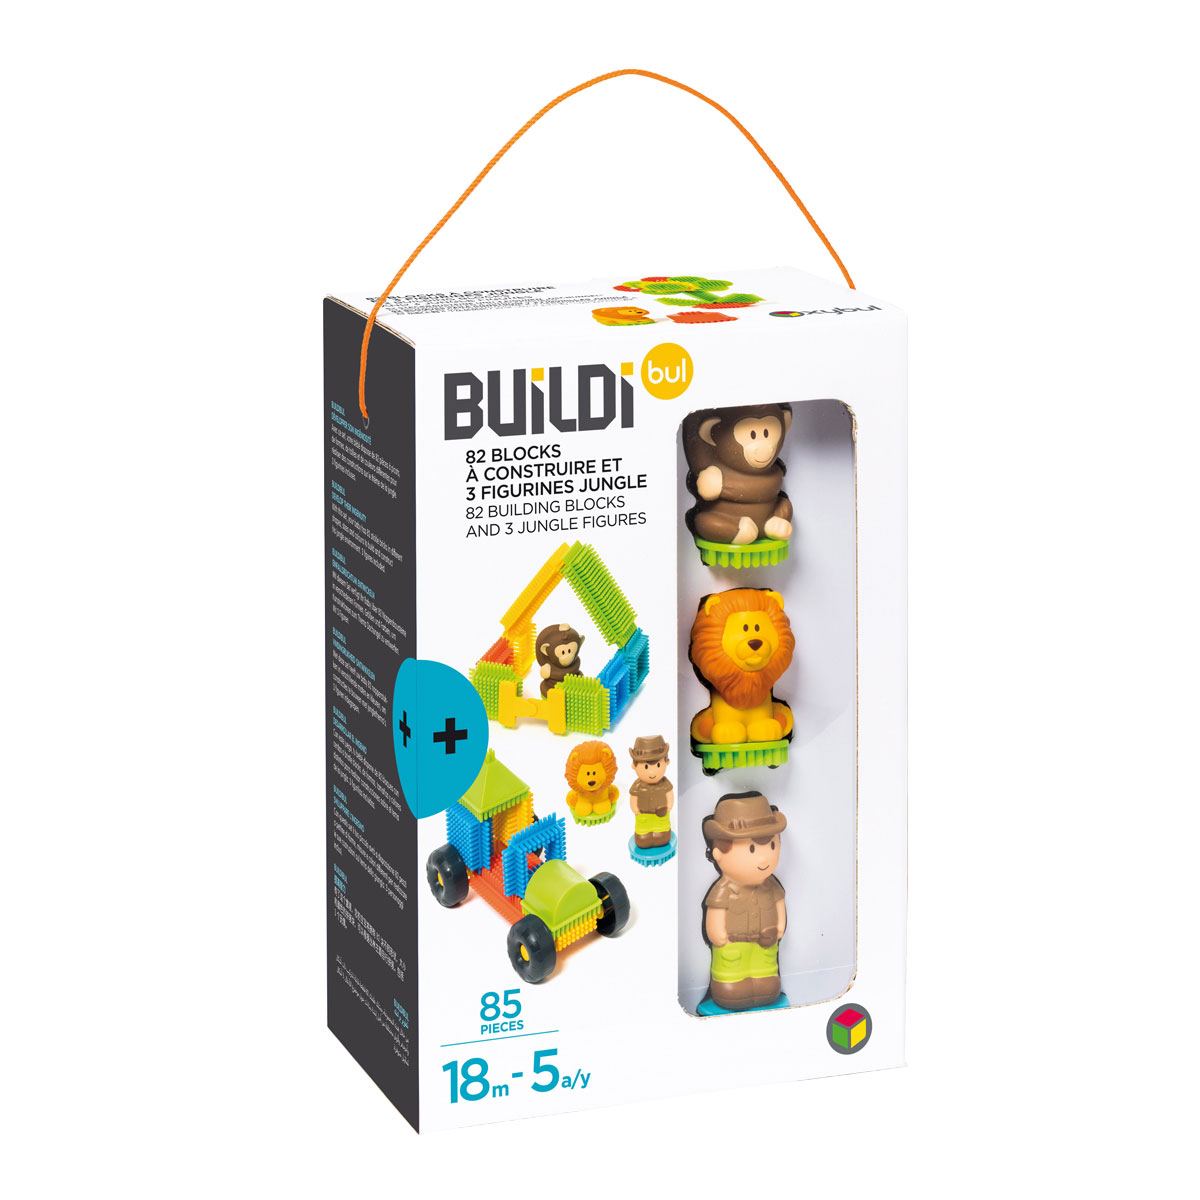 82 blocks à construire et 3 figurines jungle - Buildibul